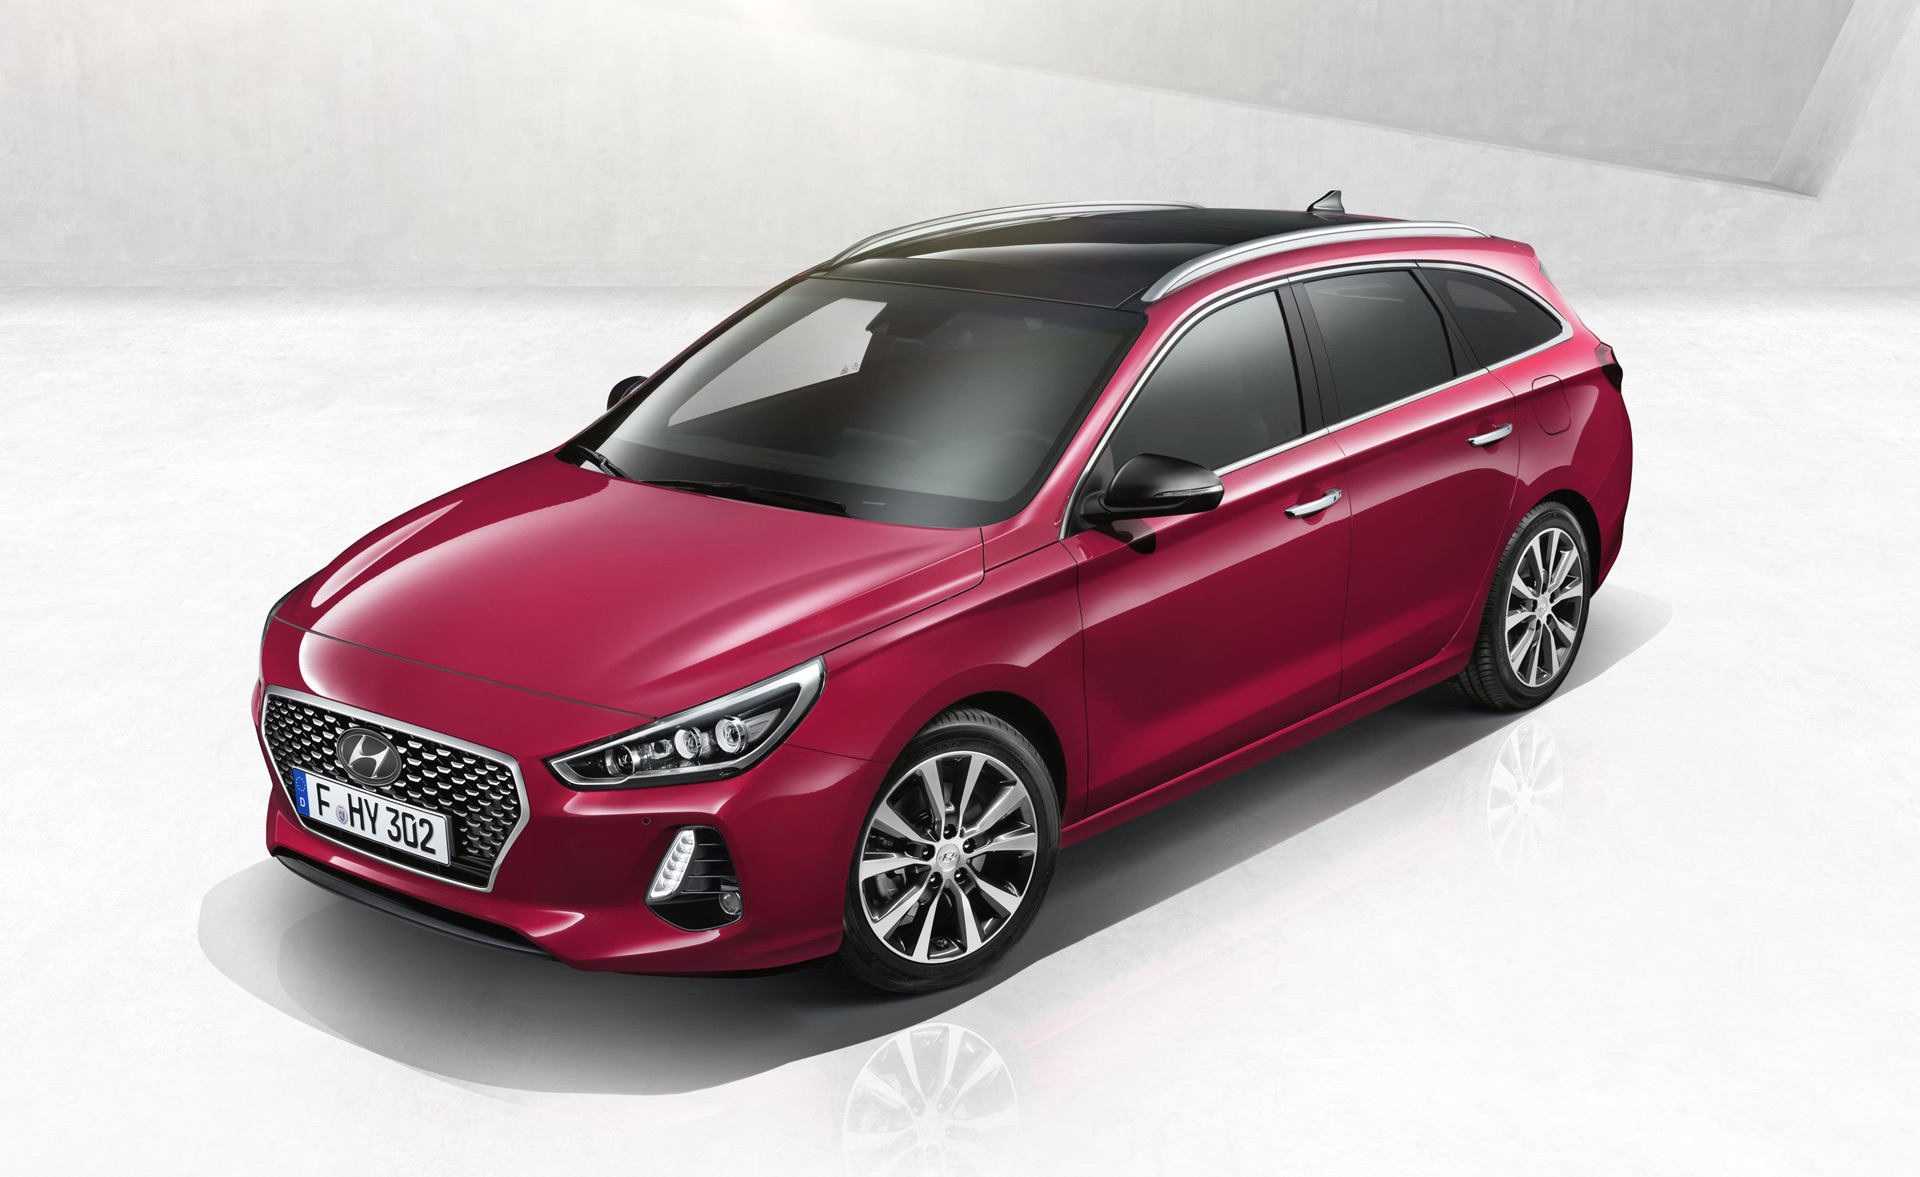 2018 hyundai elantra touring i30 tourer revealed. Black Bedroom Furniture Sets. Home Design Ideas